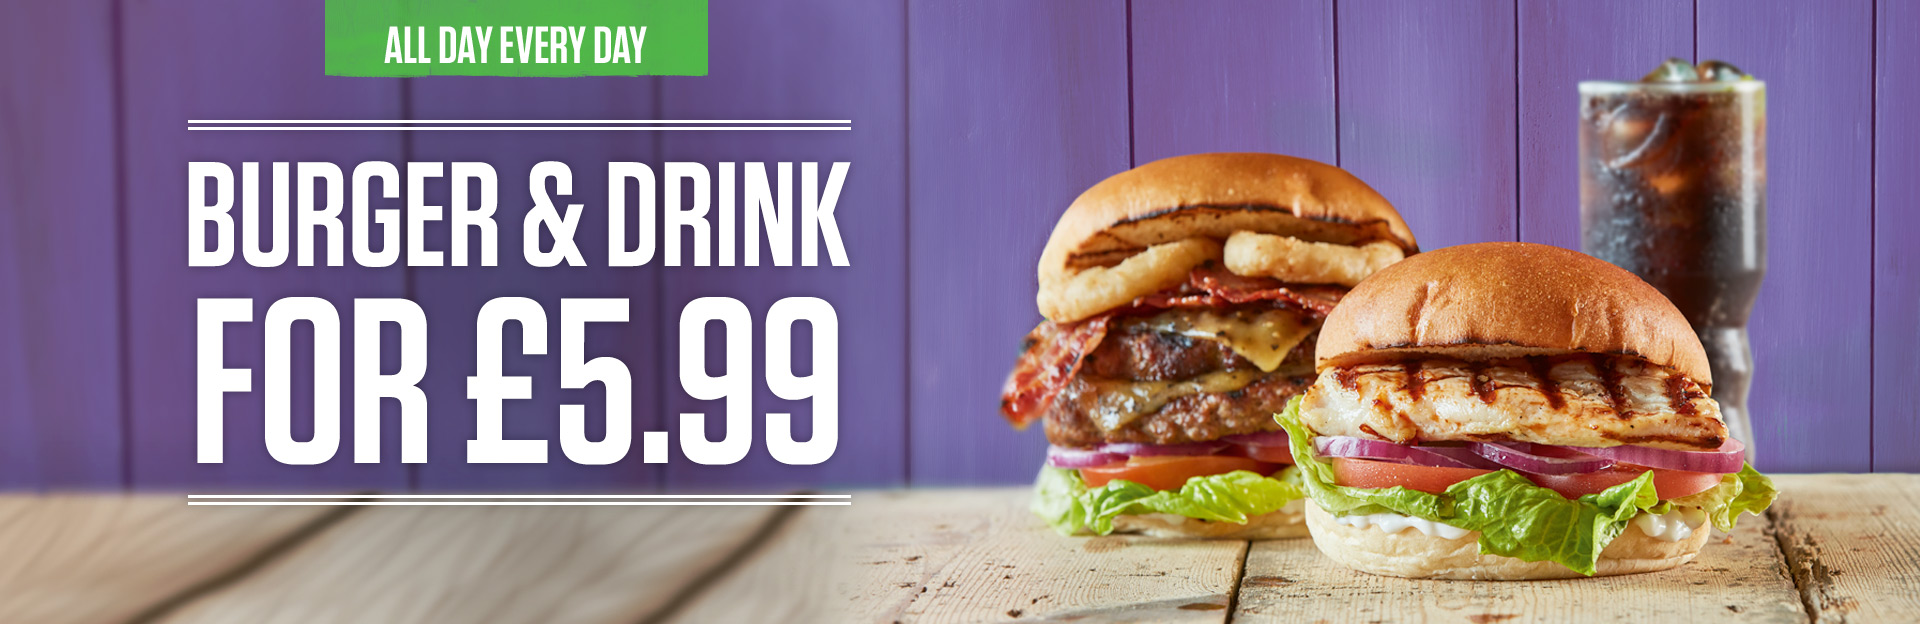 Burger and Drink Deal at The Grapes